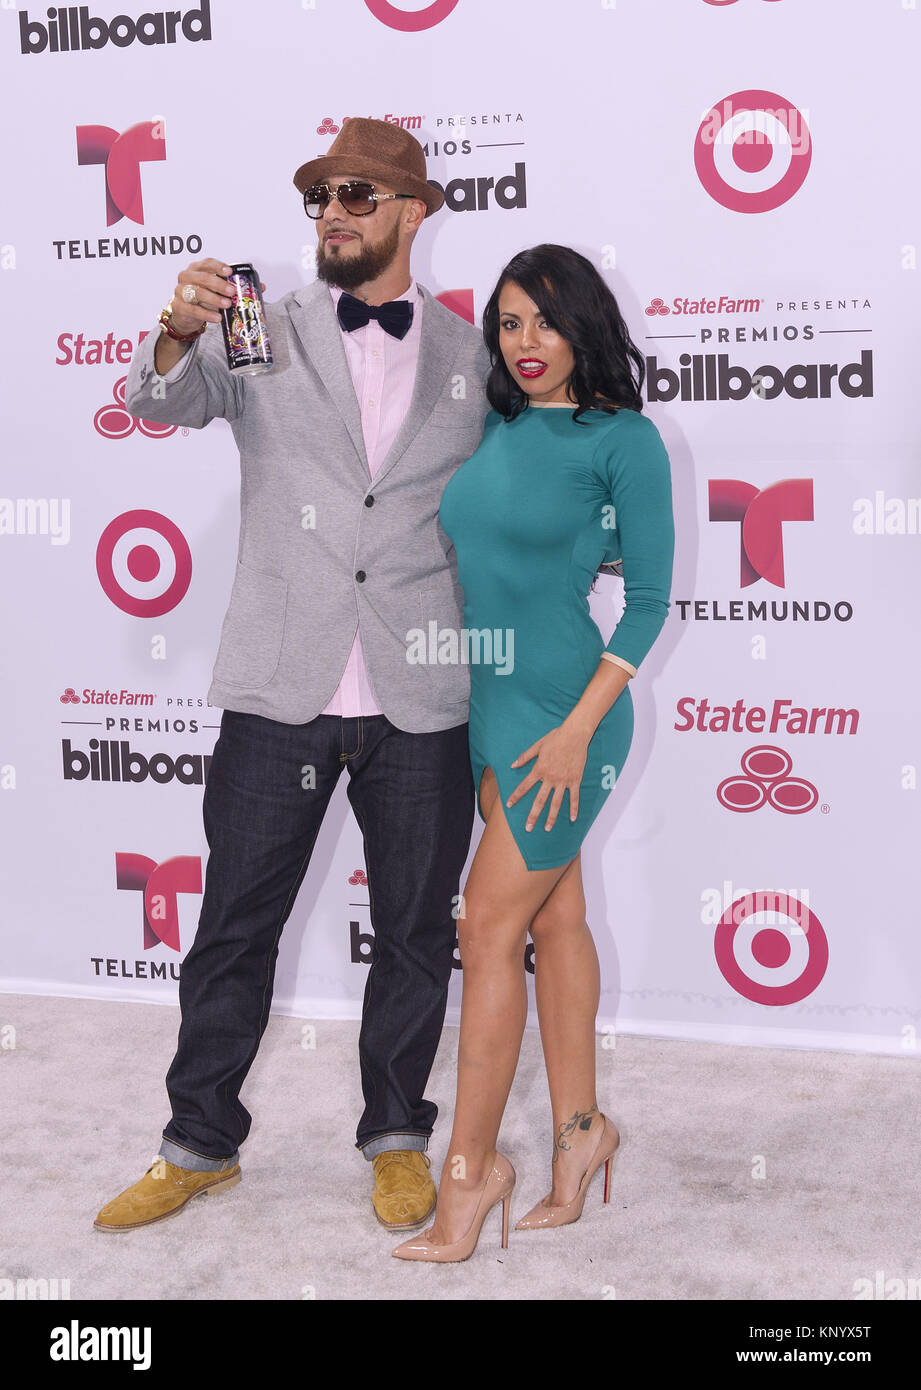 MIAMI, FL - APRIL 30:  Don Dinero and Luna Star arrives at 2015 Billboard Latin Music Awards presented by State - Stock Image